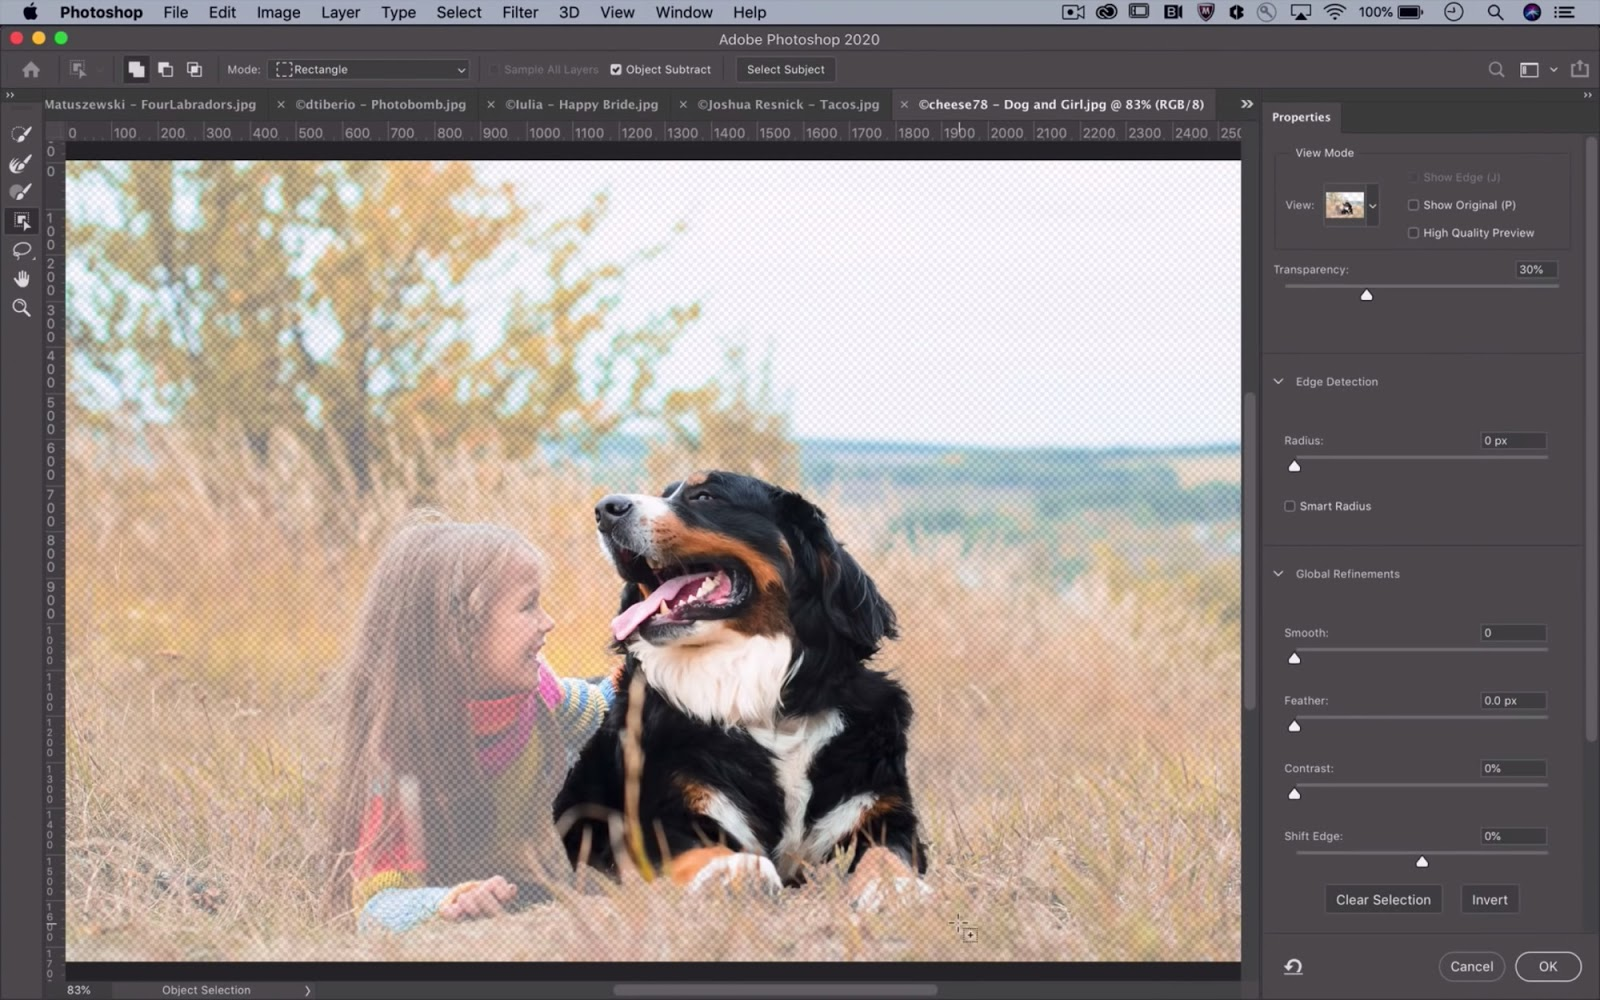 Adobe Photoshop Made Editor S Life Easier A New Ai Powered Tool Introduced In The Software Digital Information World